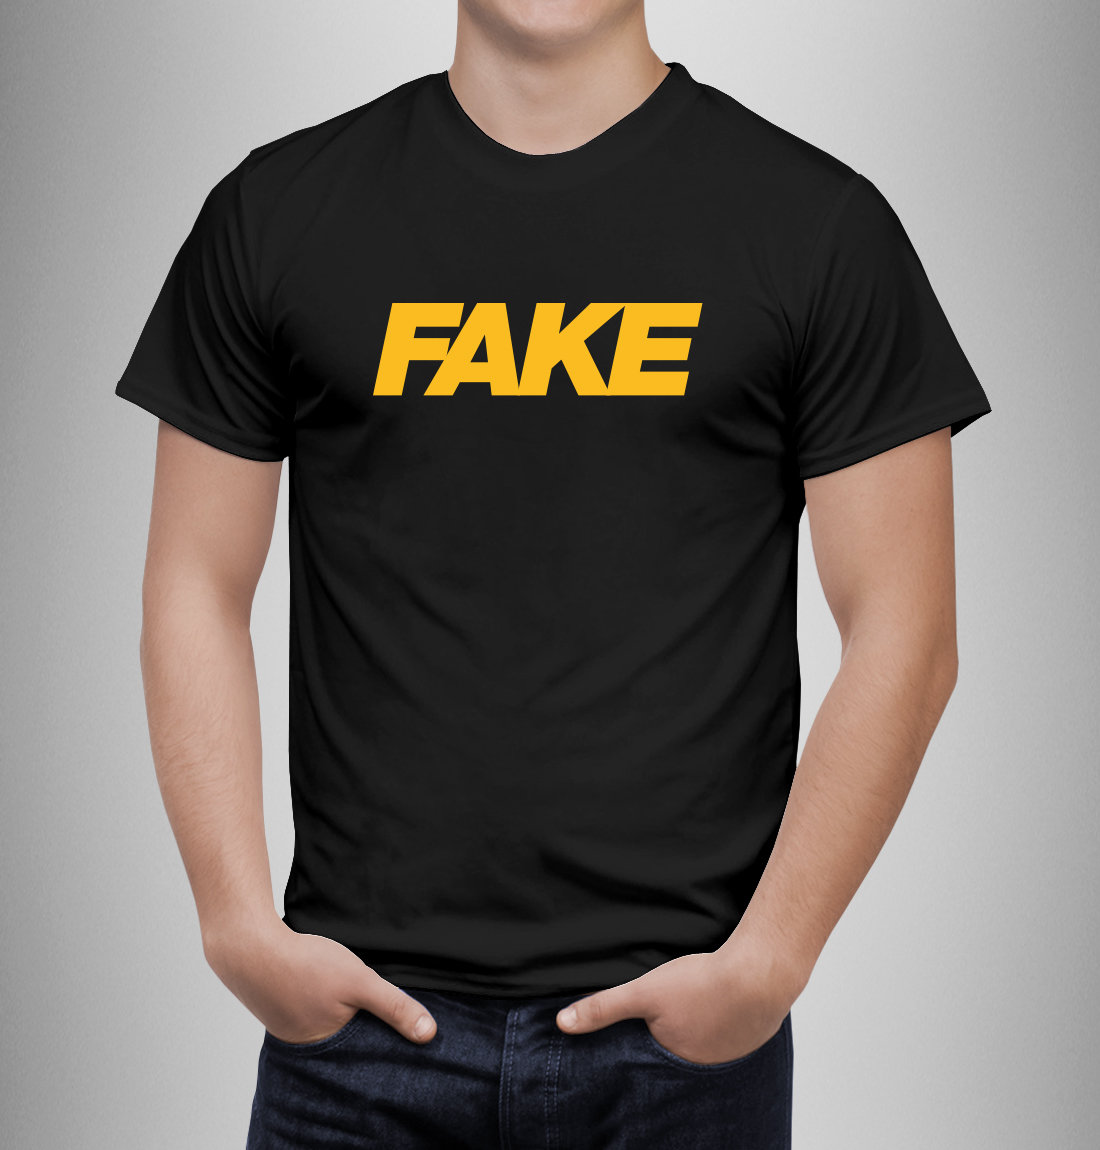 EXCLUSIVE FAKE T-Shirt - Design Yours!